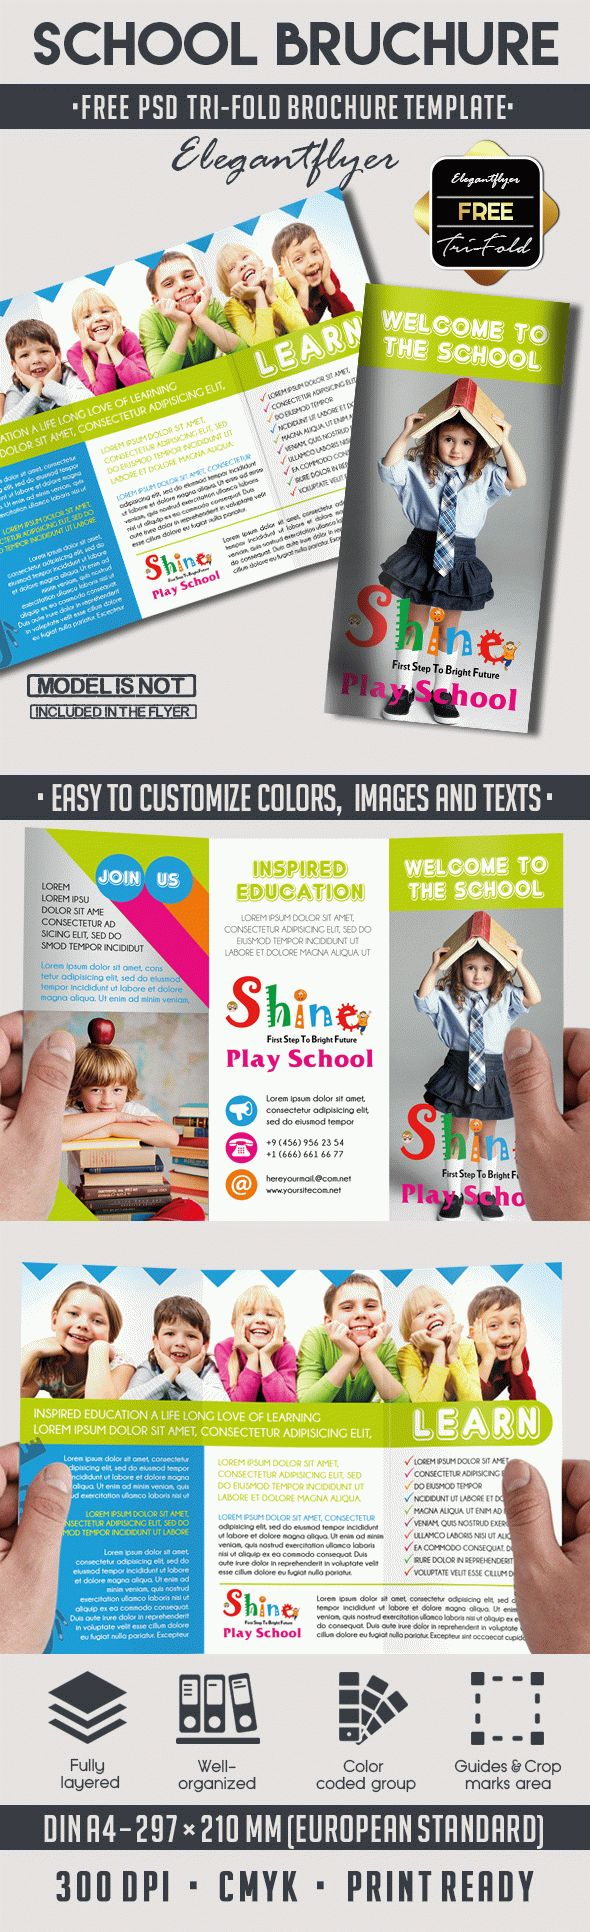 School free psd tri fold psd brochure template by for Tri fold school brochure template